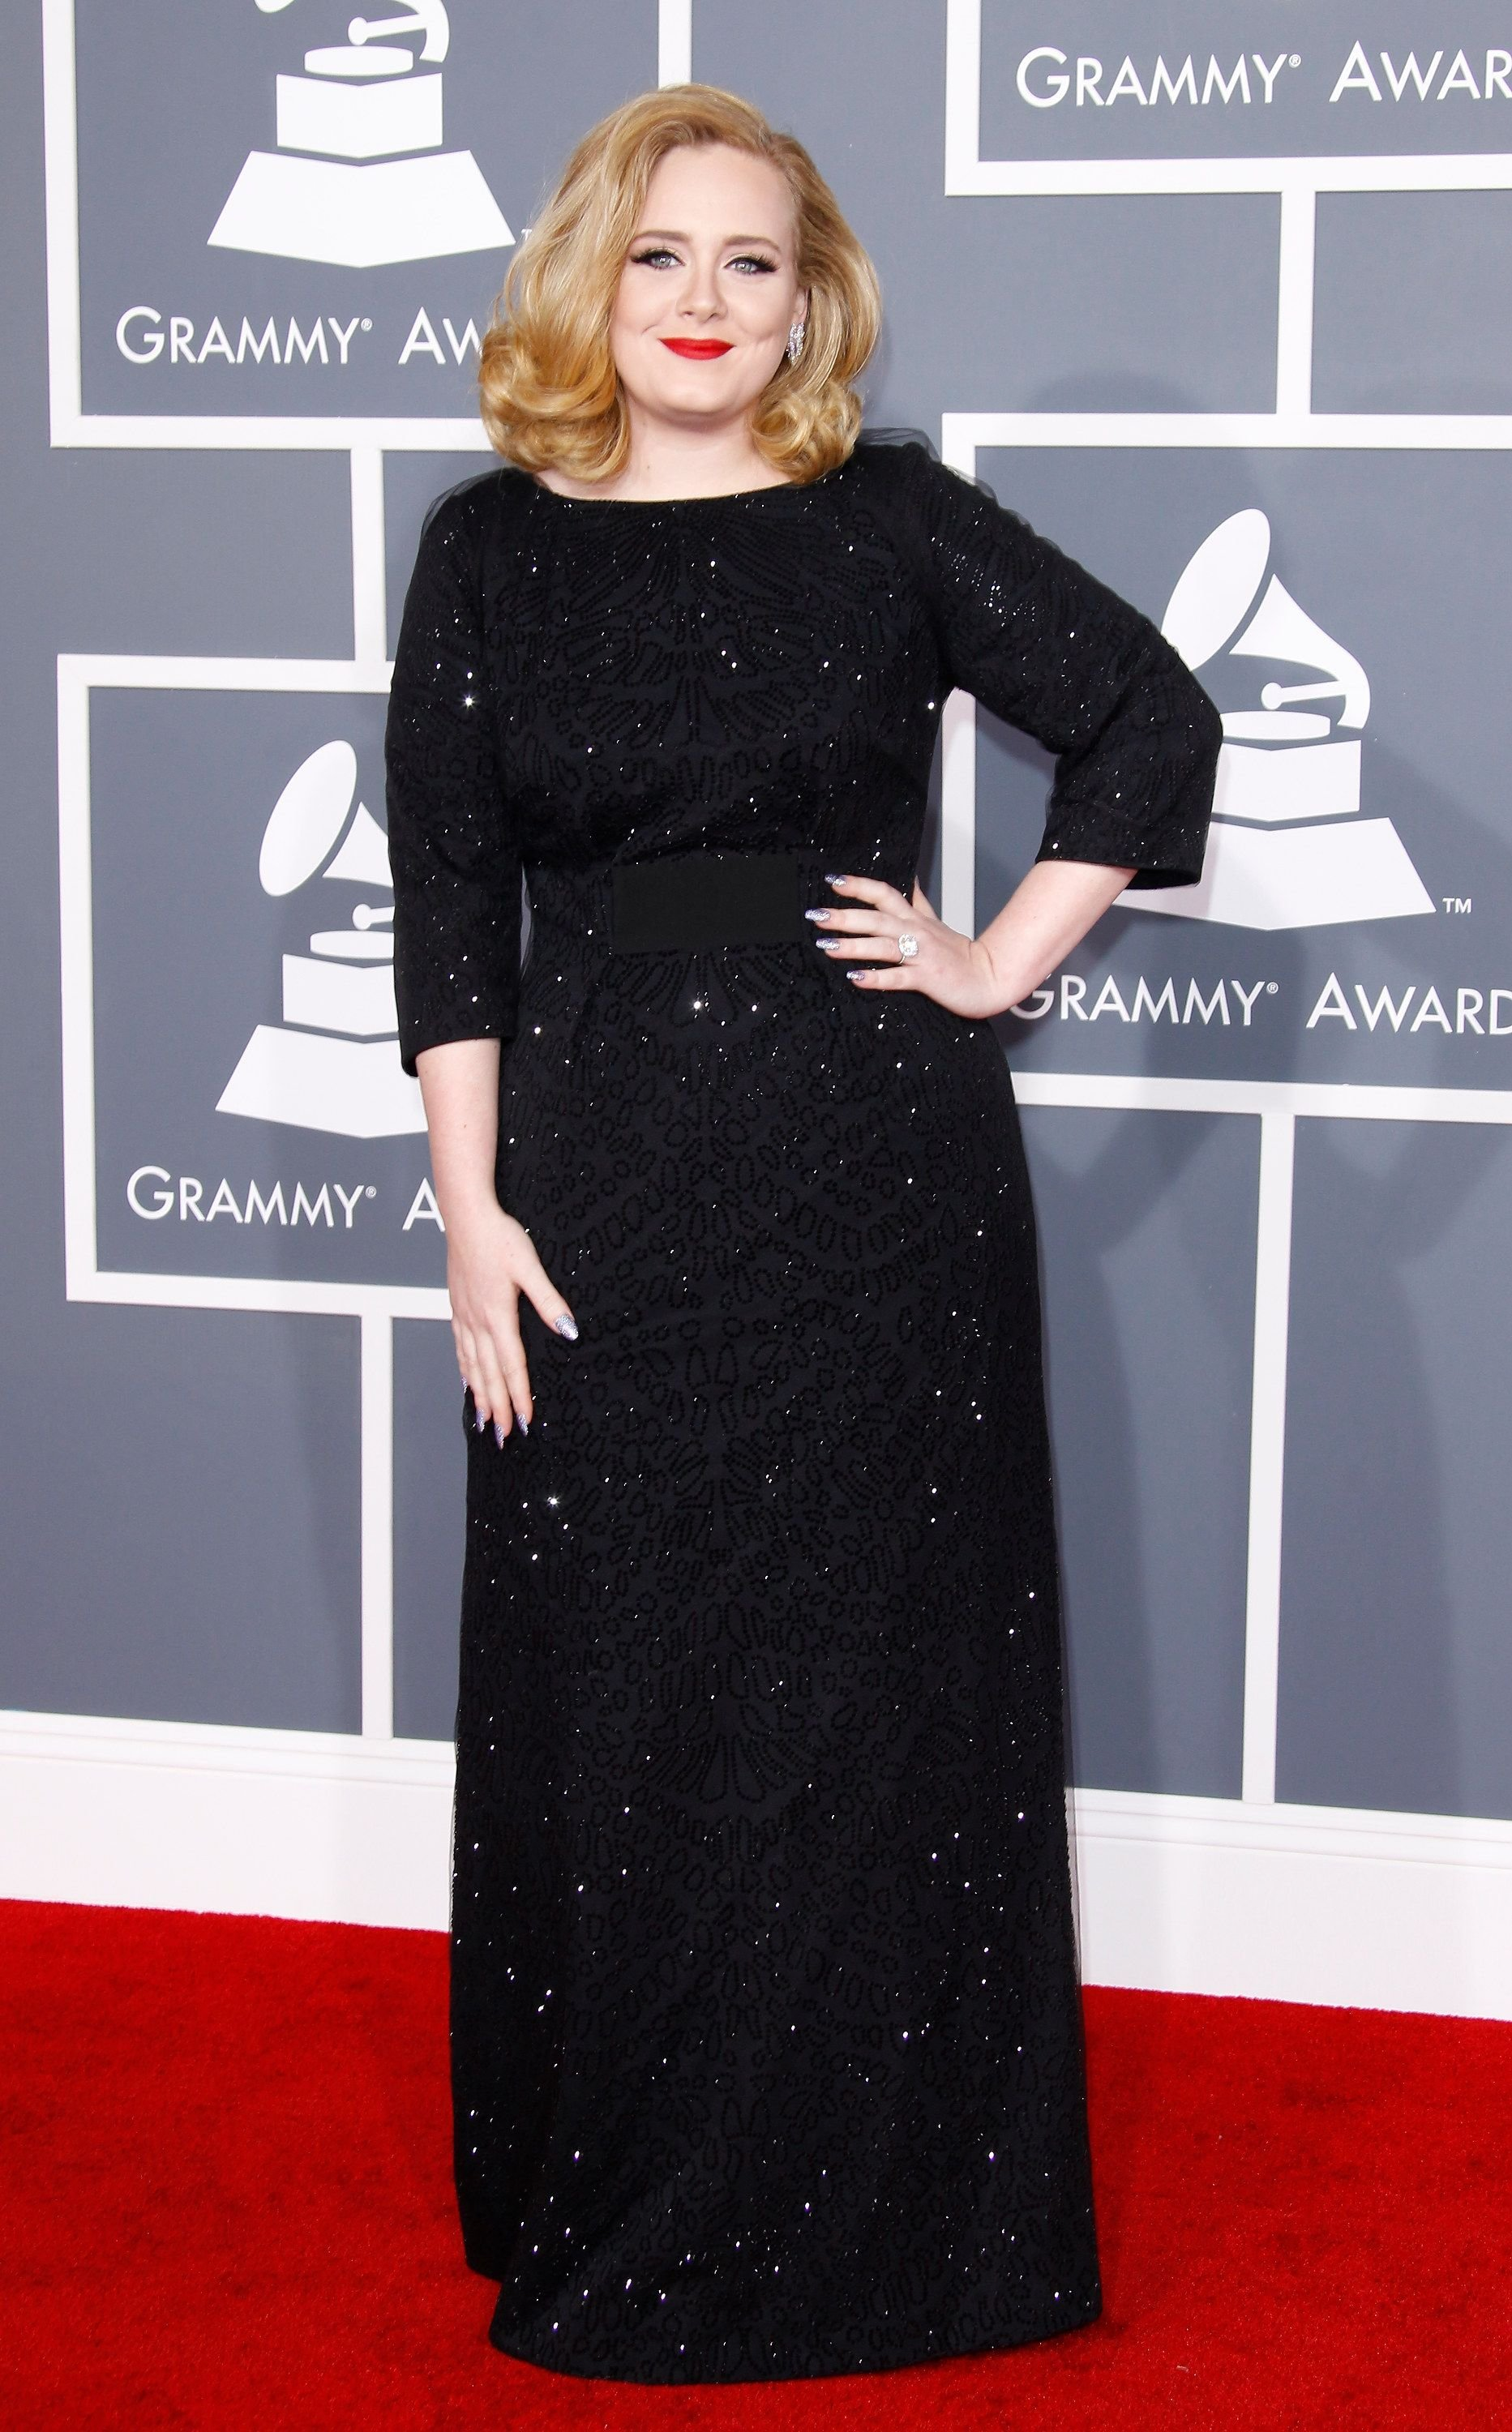 Adele arrives at the 54th Annual GRAMMY Awards held at the Staples Center on February 12, 2012 in Los Angeles, California. | Source: Getty Images